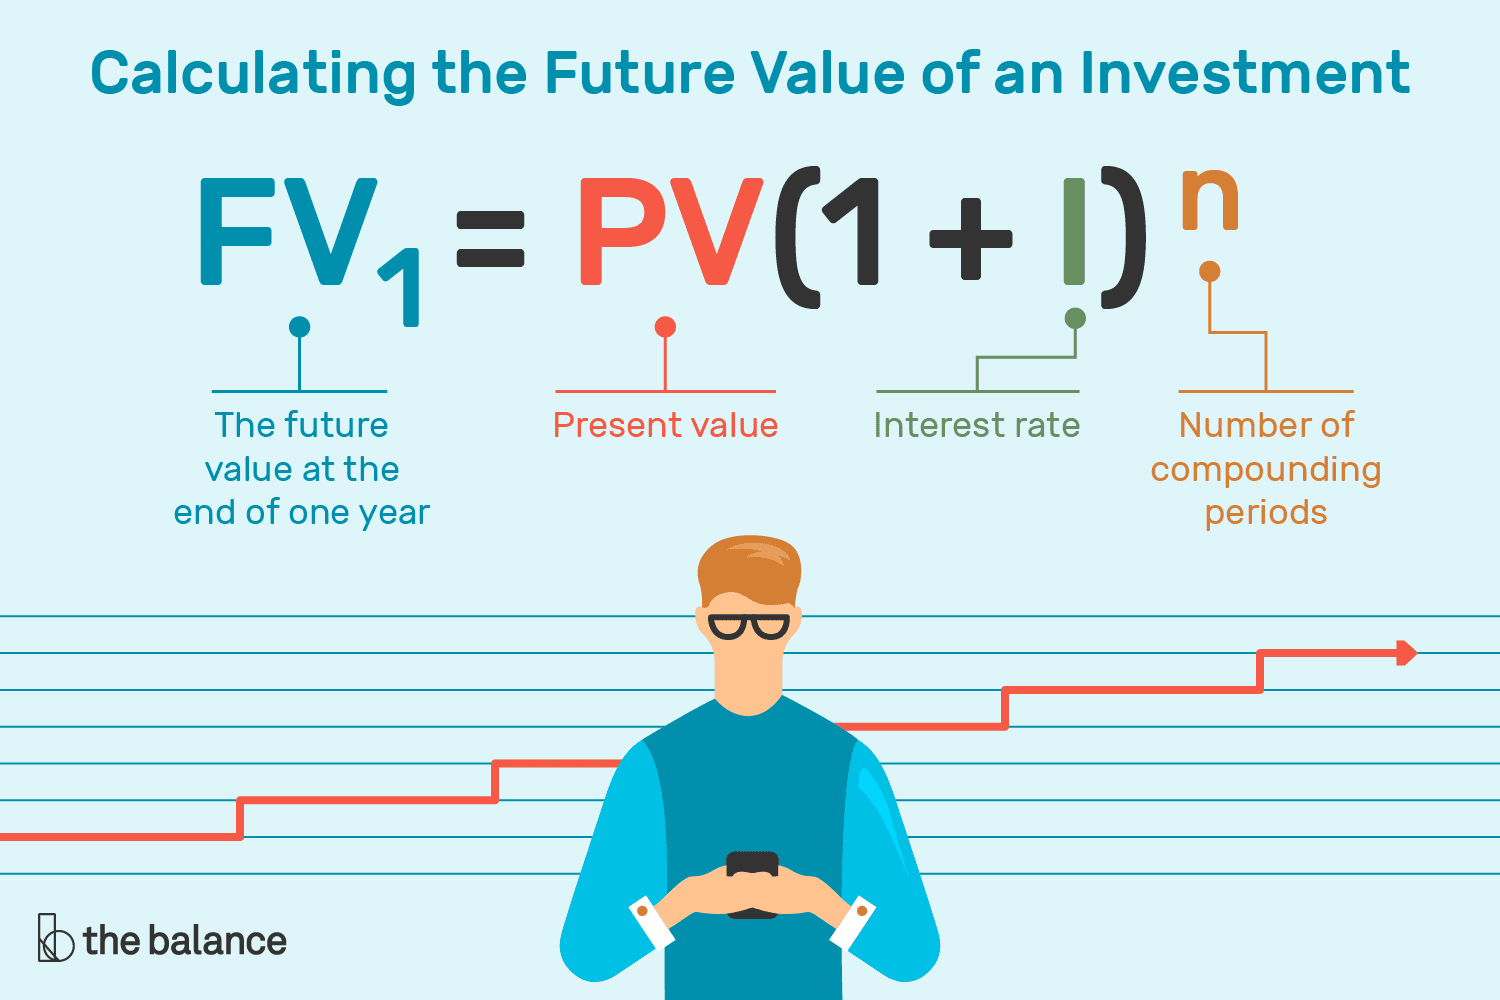 How To Calculate The Future Value Of An Investment